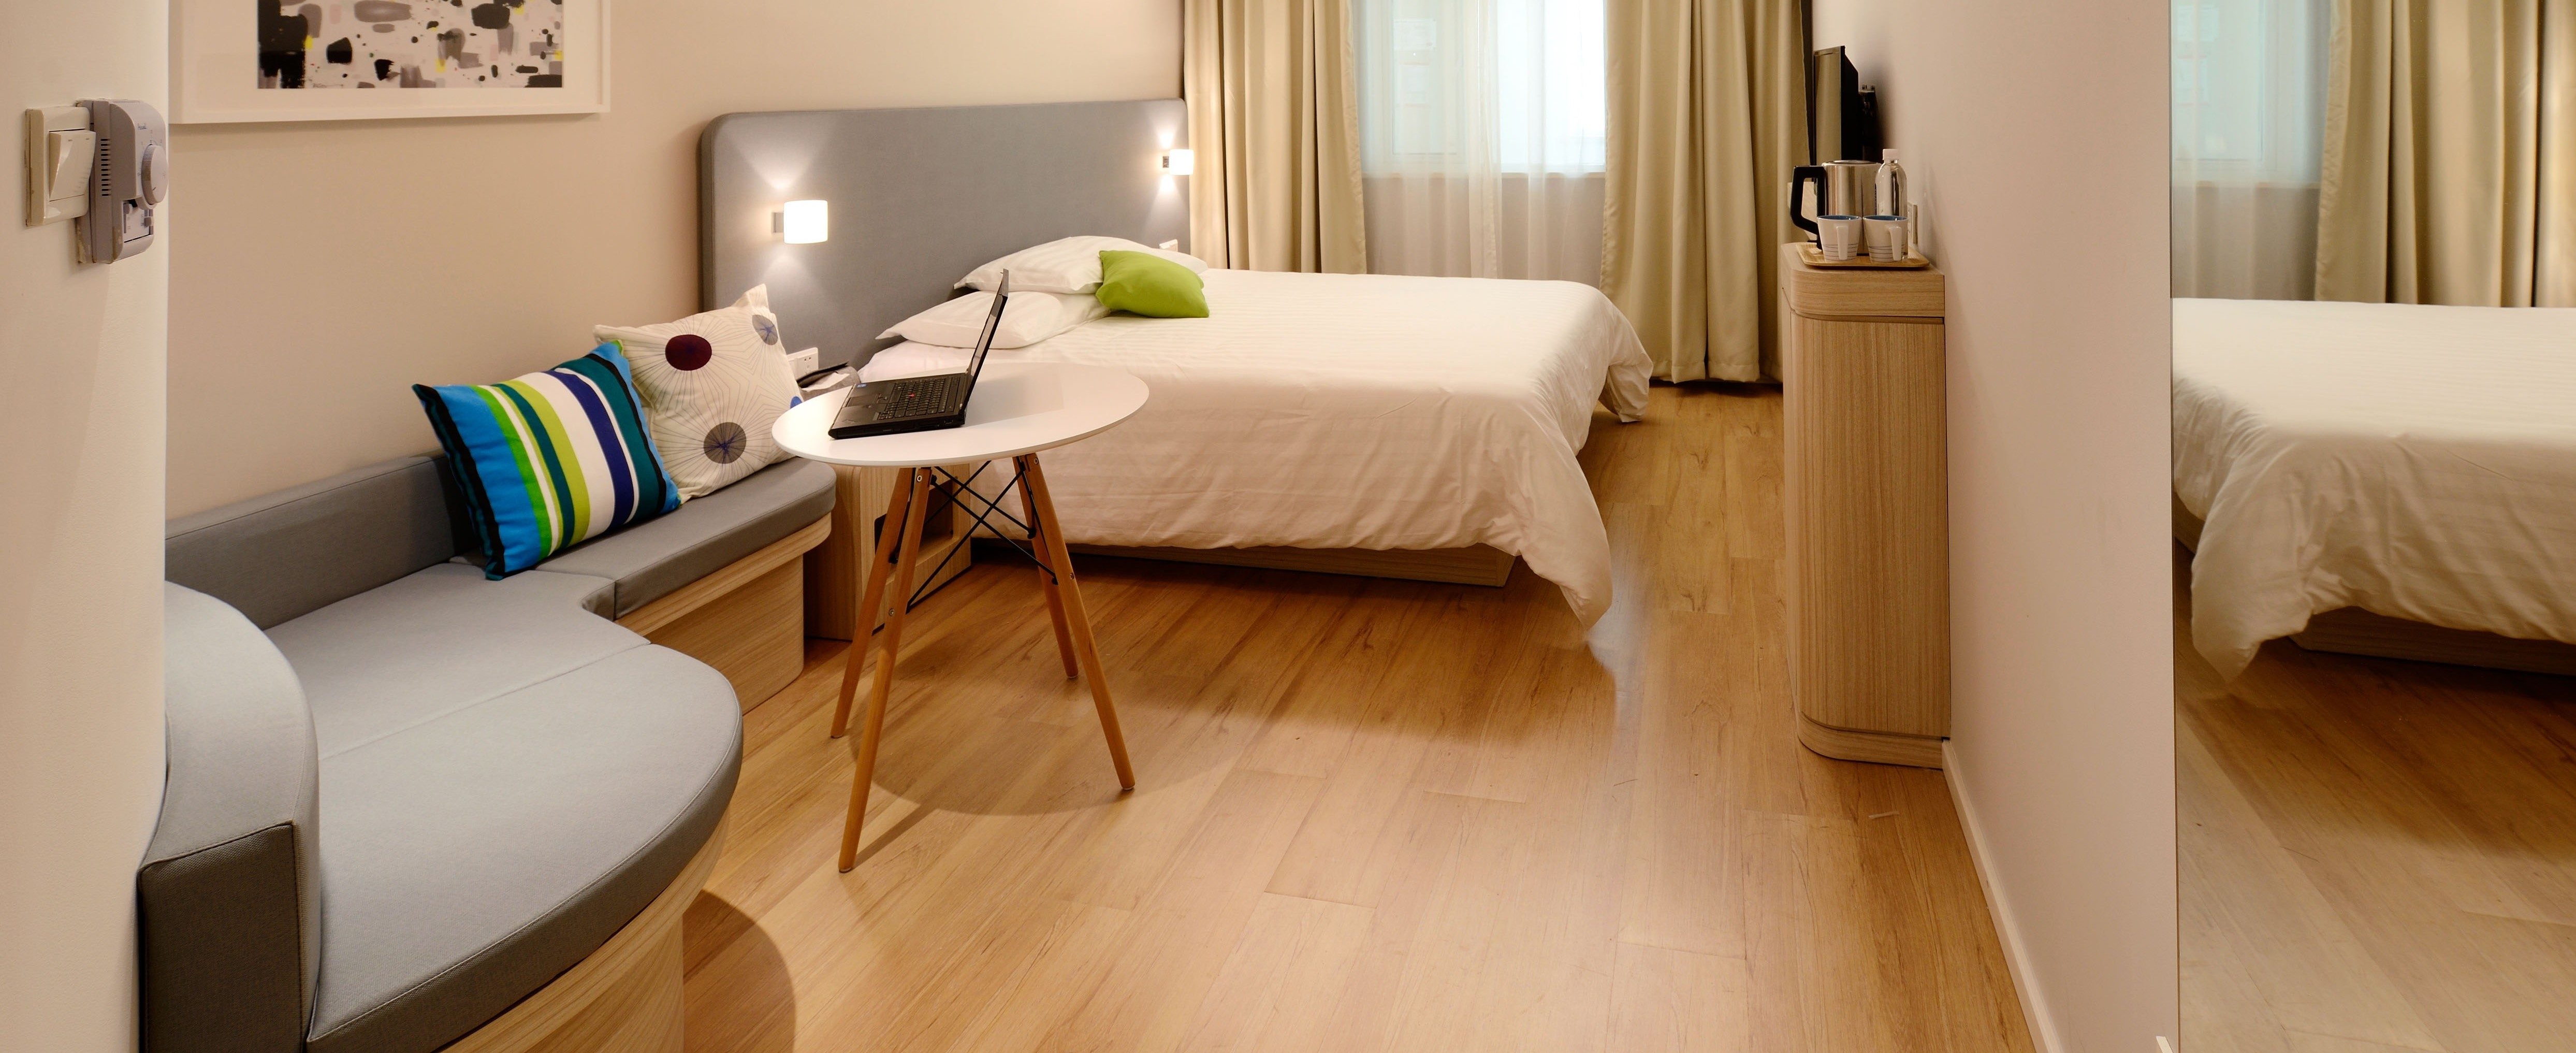 How to choose your student accommodation